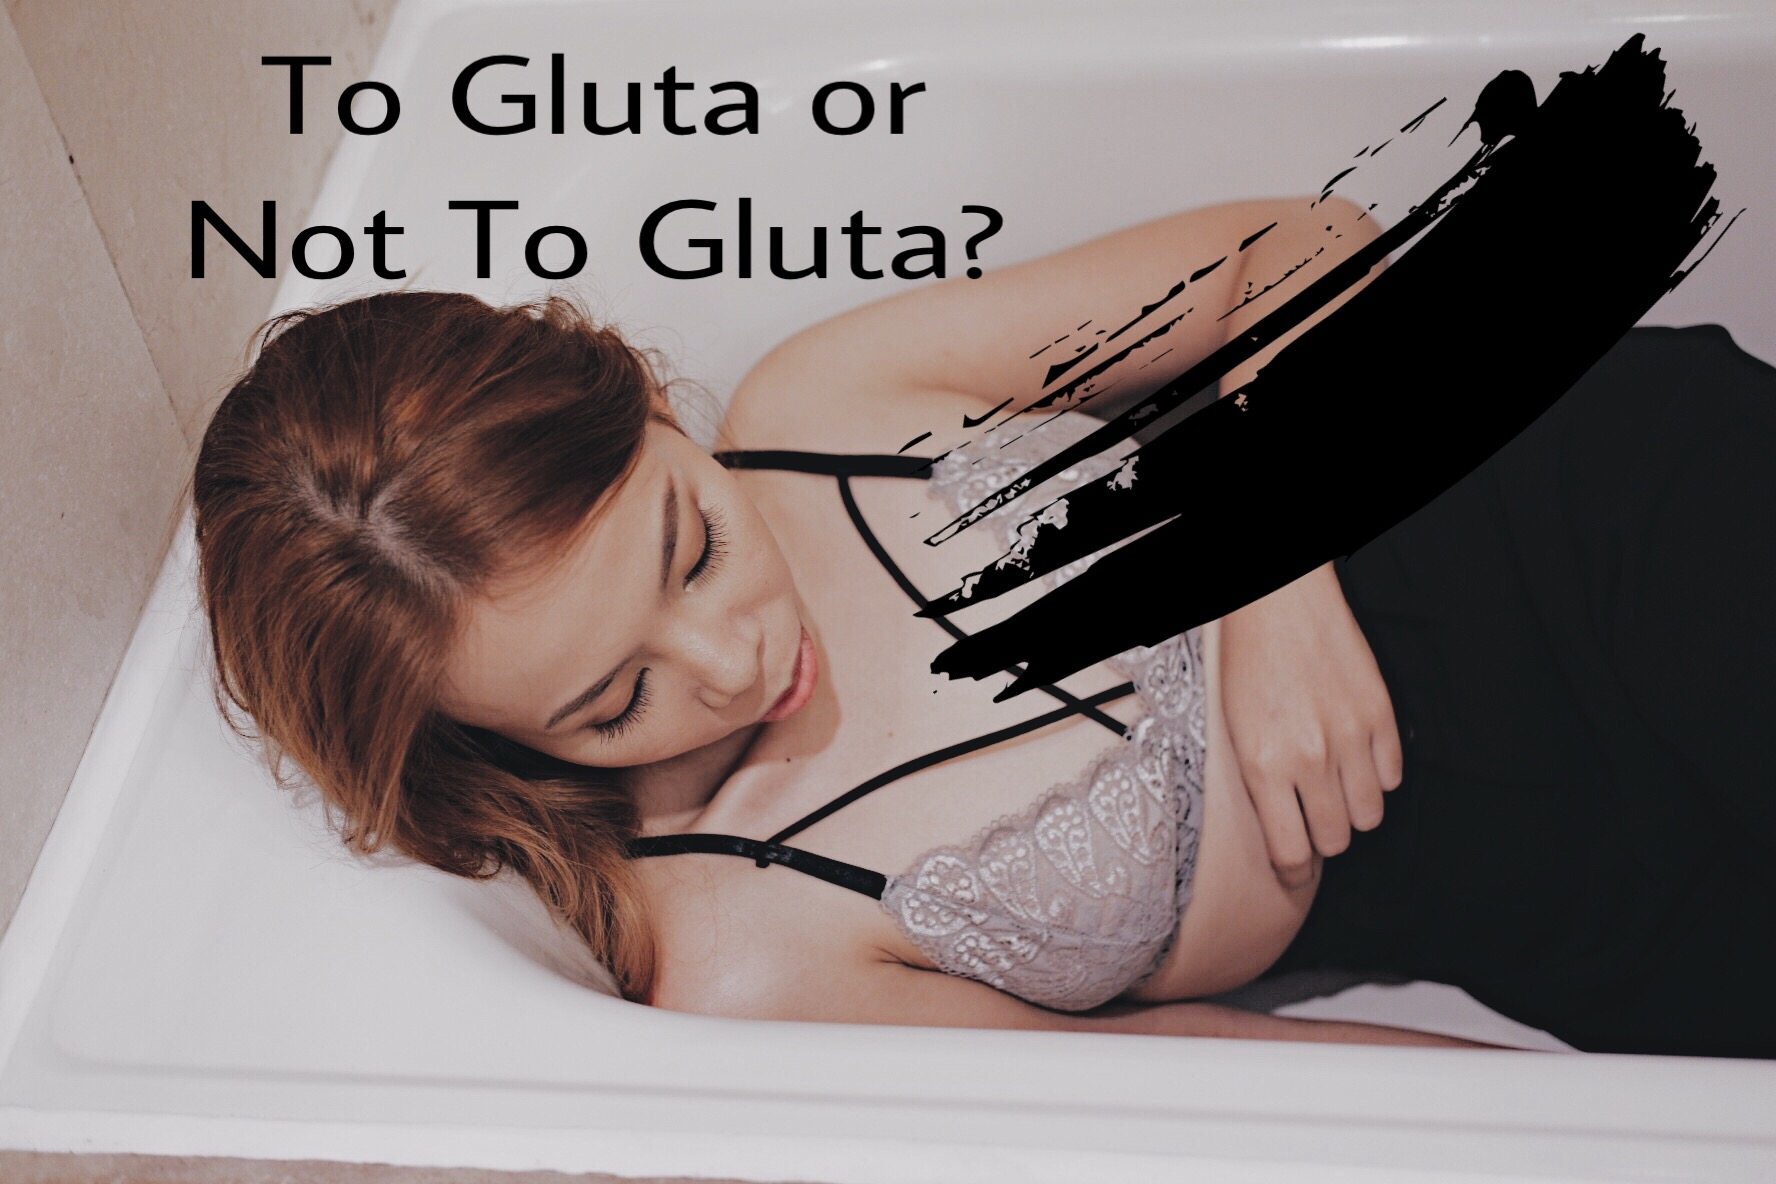 Are IV (Glutathione) Injections Safe and Effective?